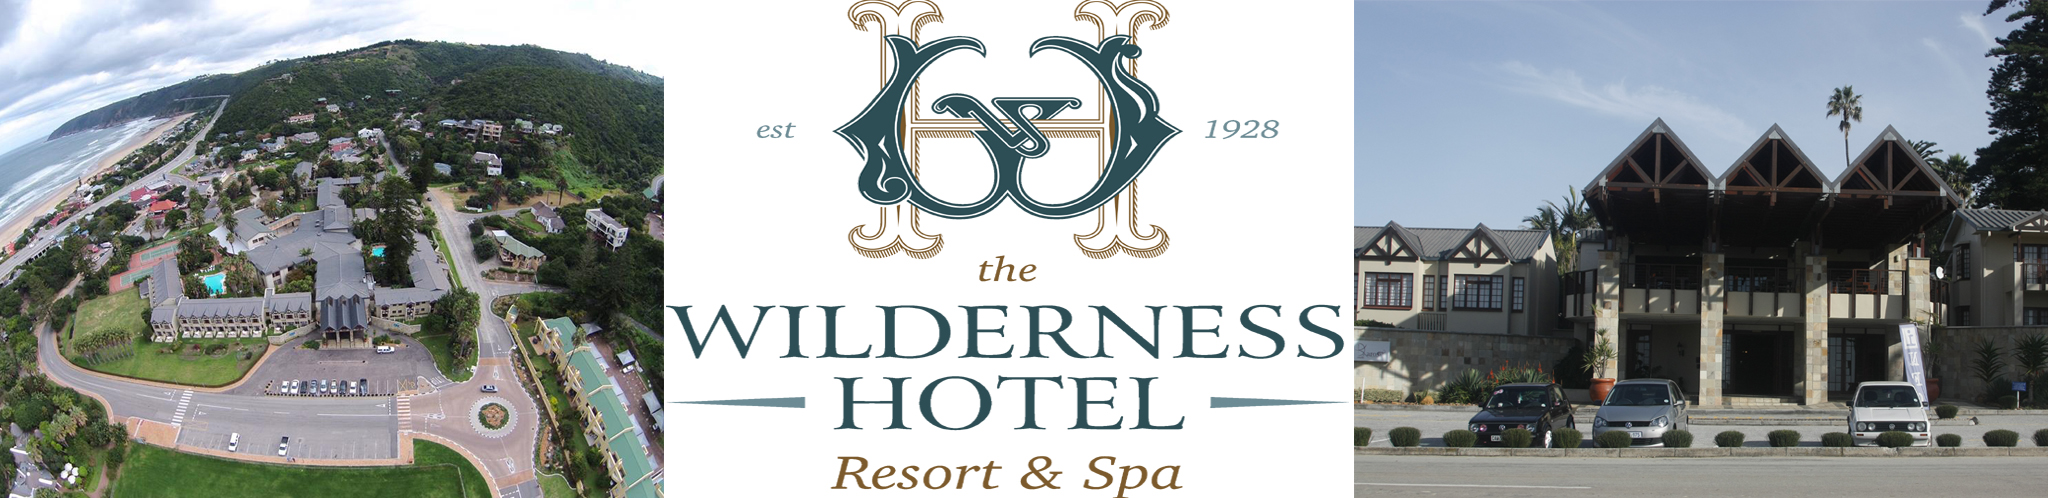 the-wilderness-hotel